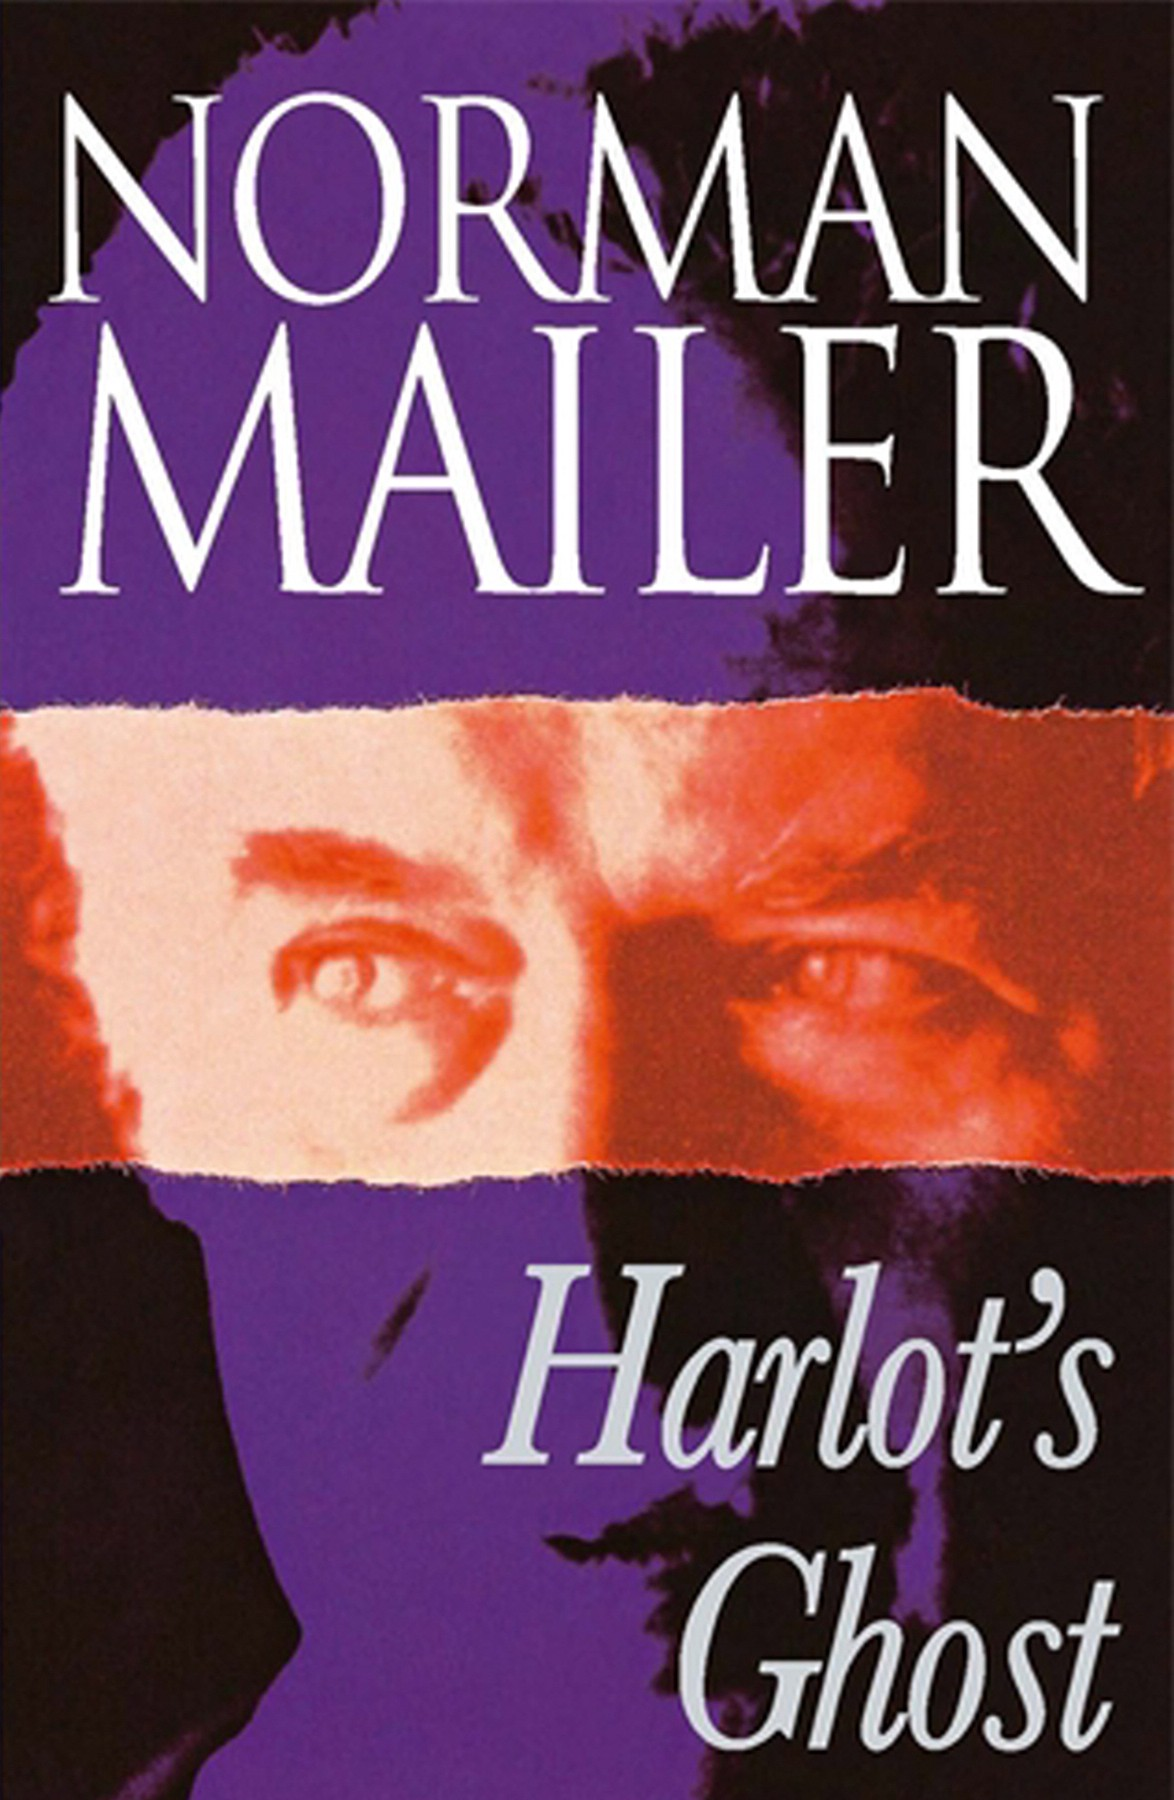 norman mailer a collection of critical essays Mailer, norman norman mailer was one of the most protean writers of the latter half of the  norman mailer: a collection of critical essays englewood cliffs.